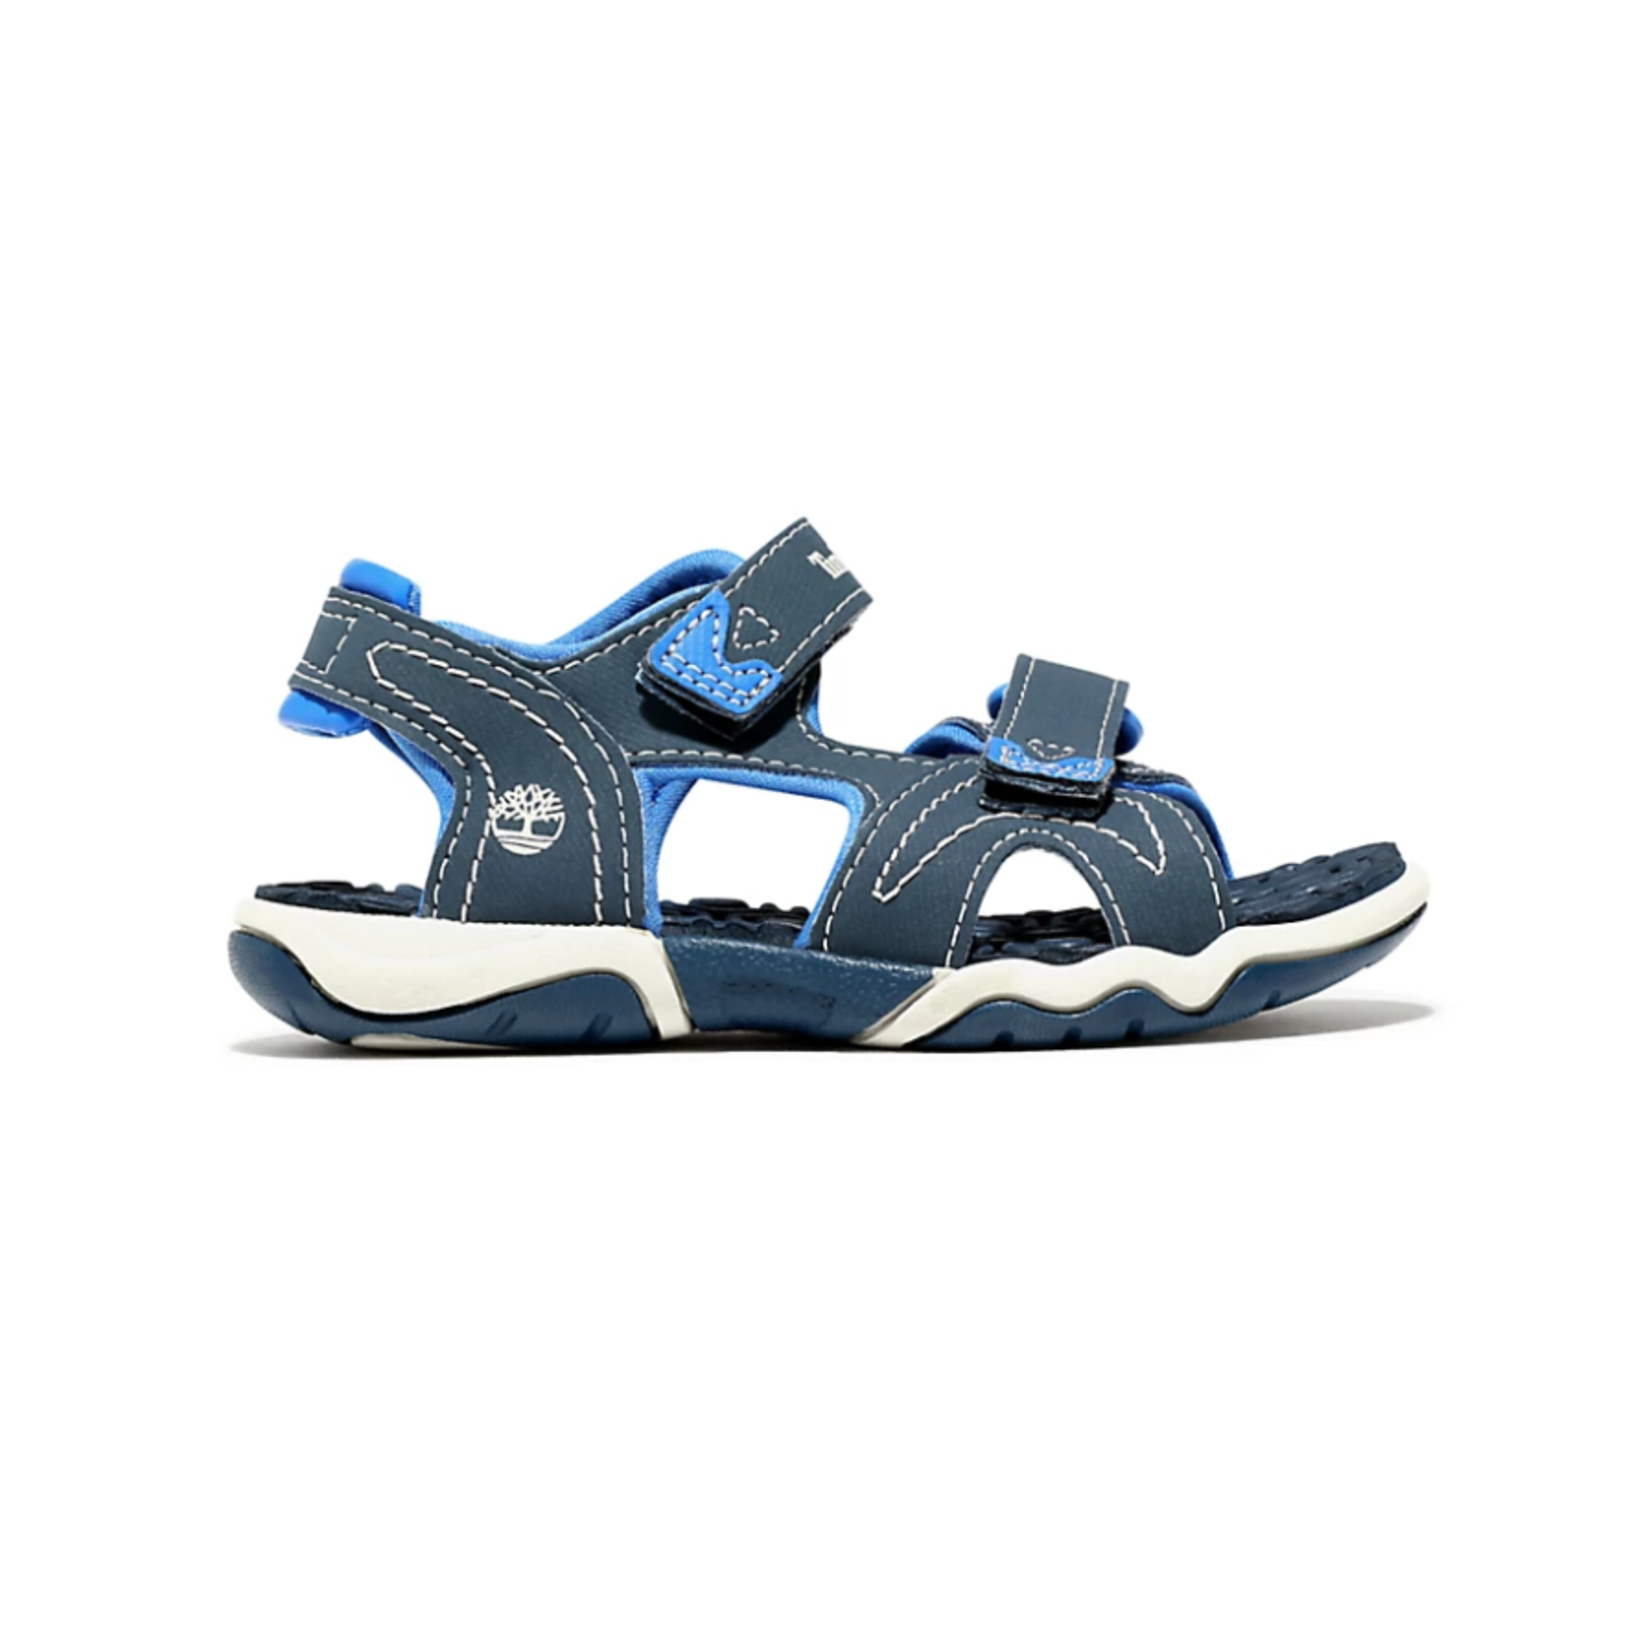 Timberland ADVENTURE SEEKER 2-STRAP SANDAL FOR TODDLER IN NAVY/BLUE